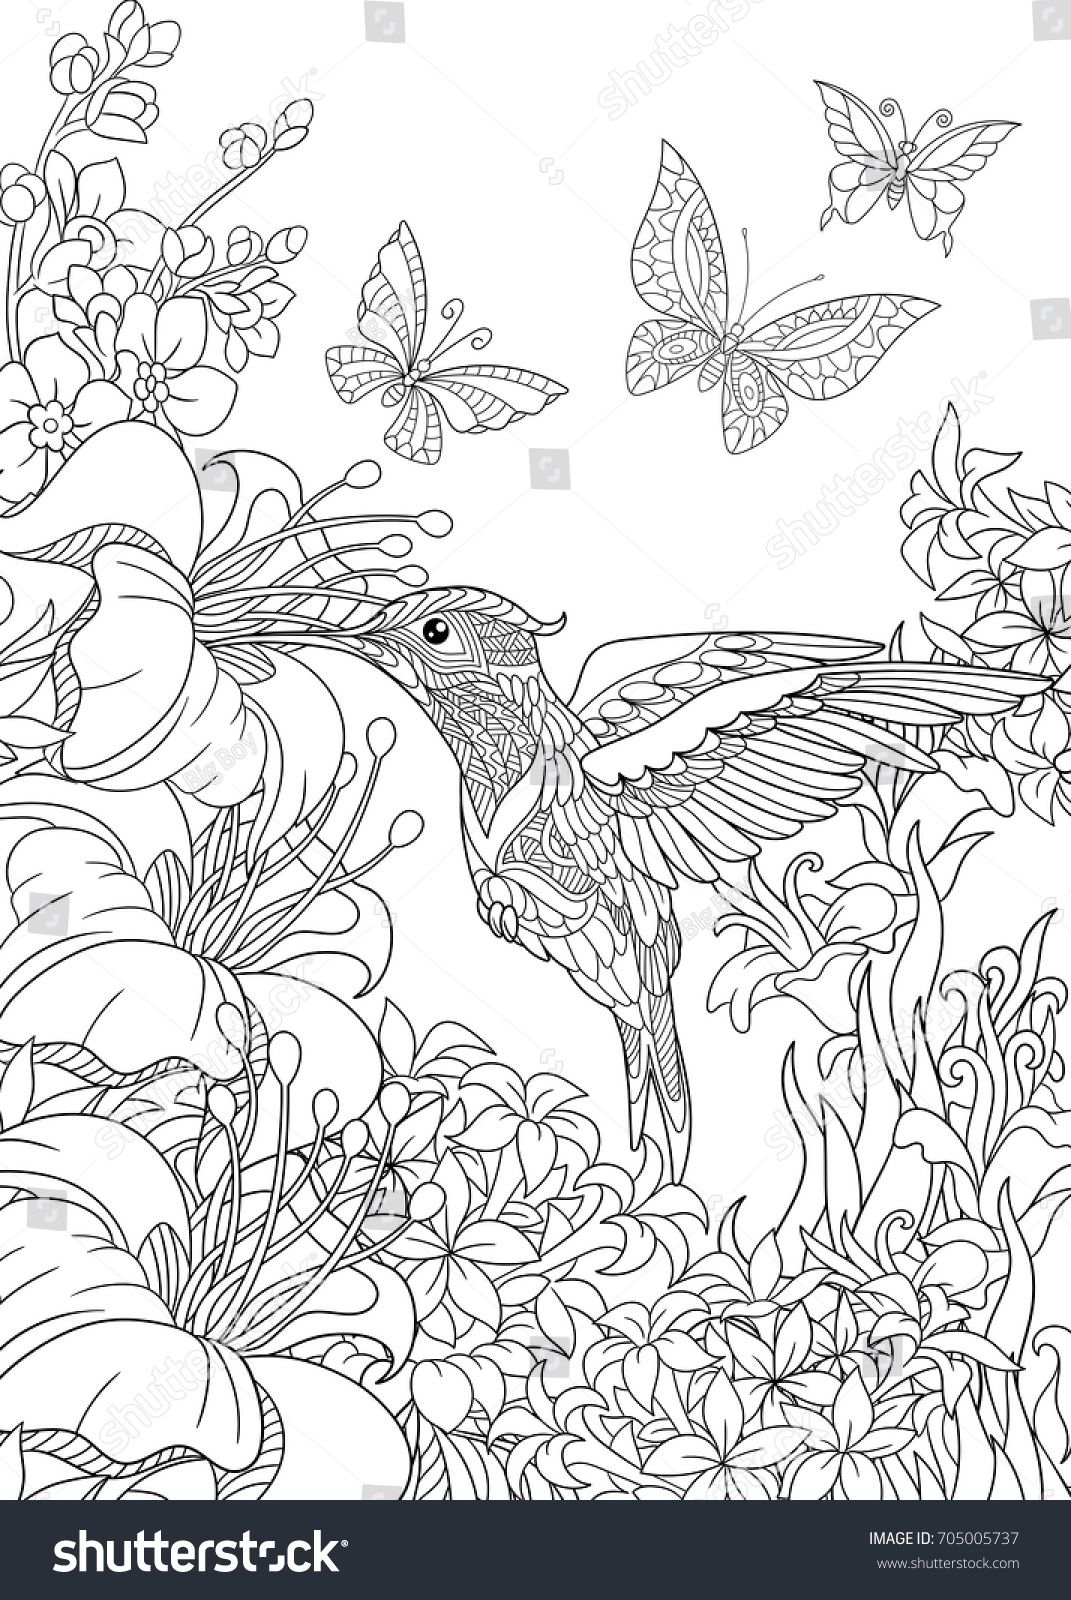 Pin By Lisa On Coloring Pages Coloring Pages Pinterest